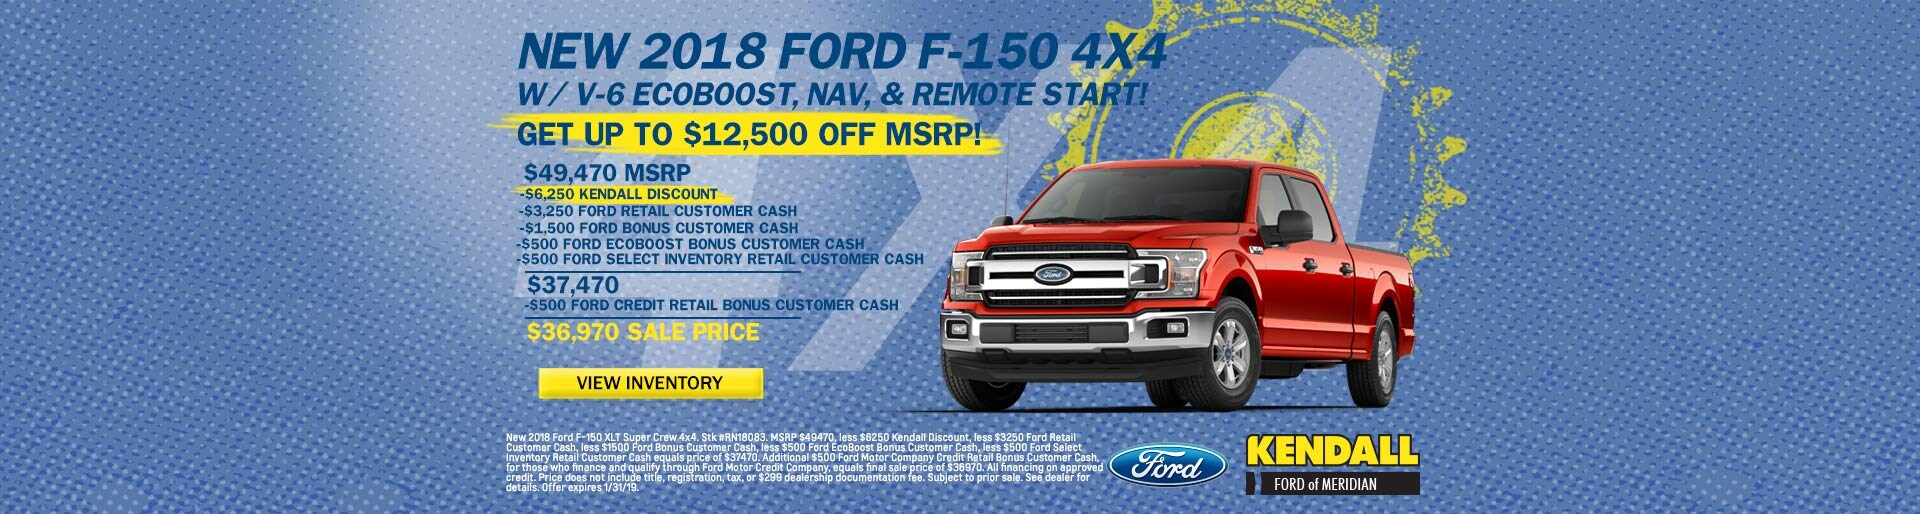 New Certified Ford Dealership Used Cars For Sale Kendall F 250 Super Duty Tool Box Cost Previous Next